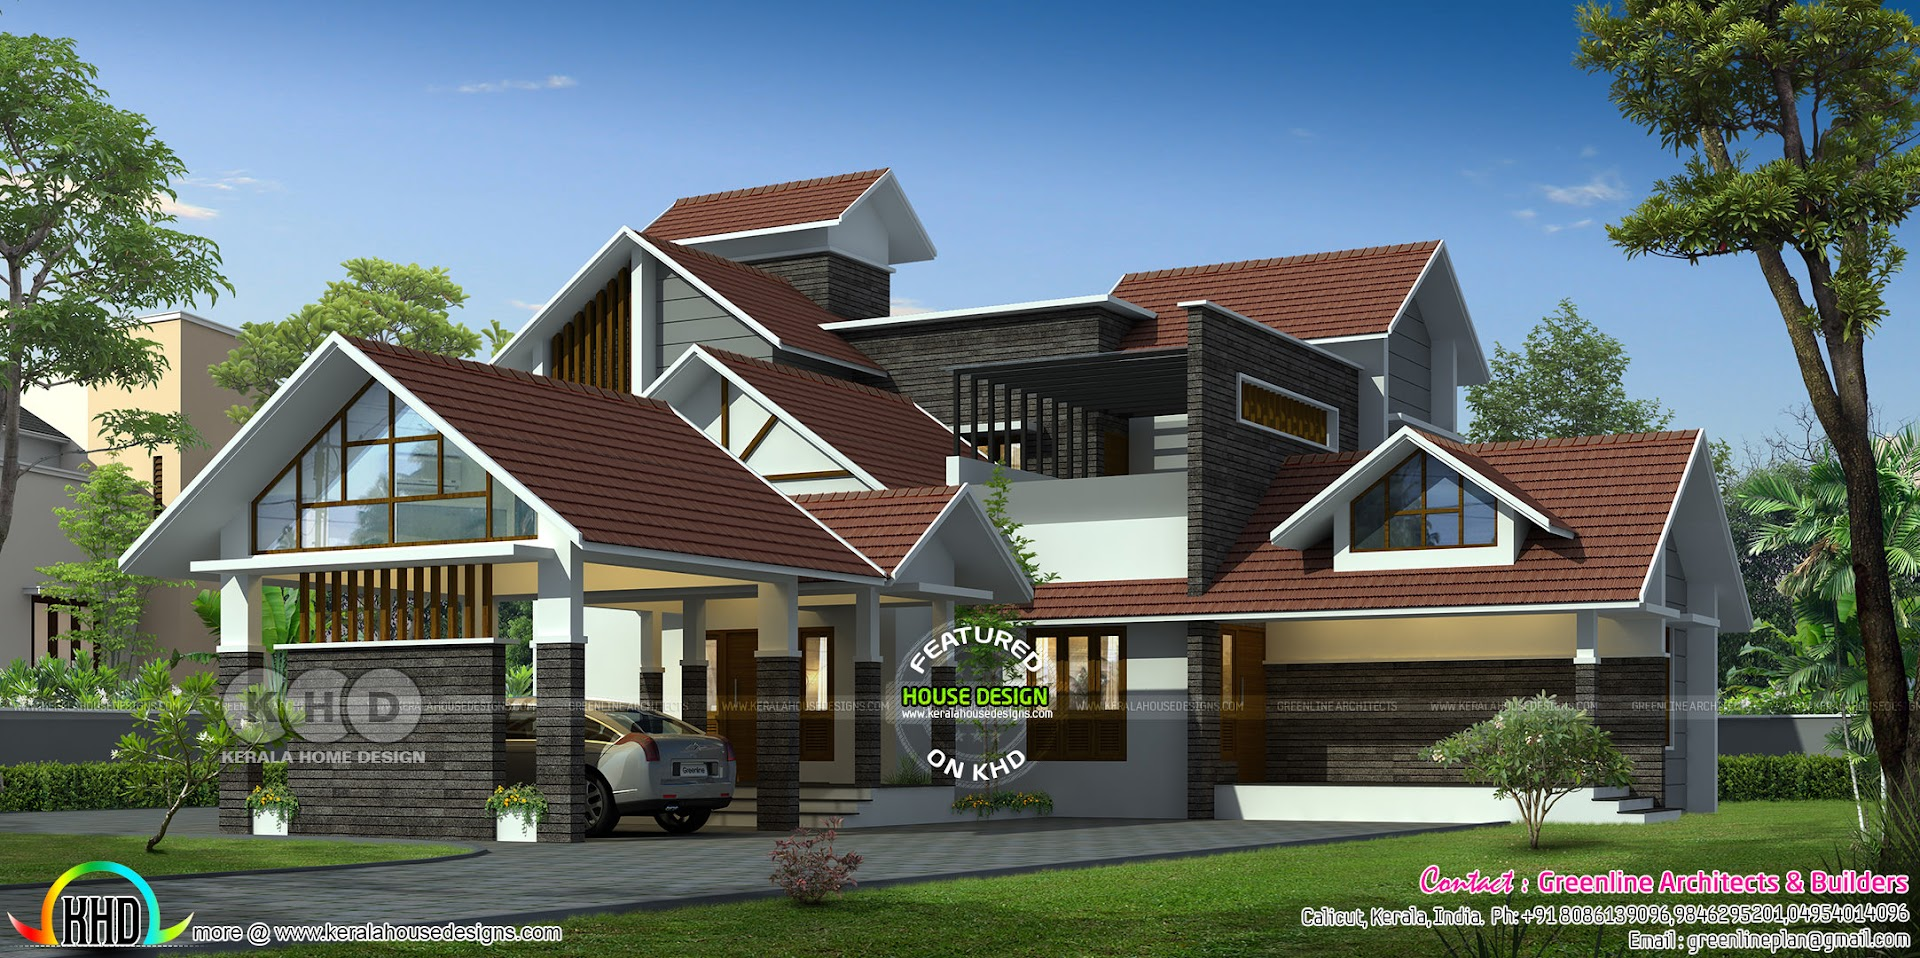 3308 Square Feet Sloped Roof House Architecture Kerala Home Design Bloglovin